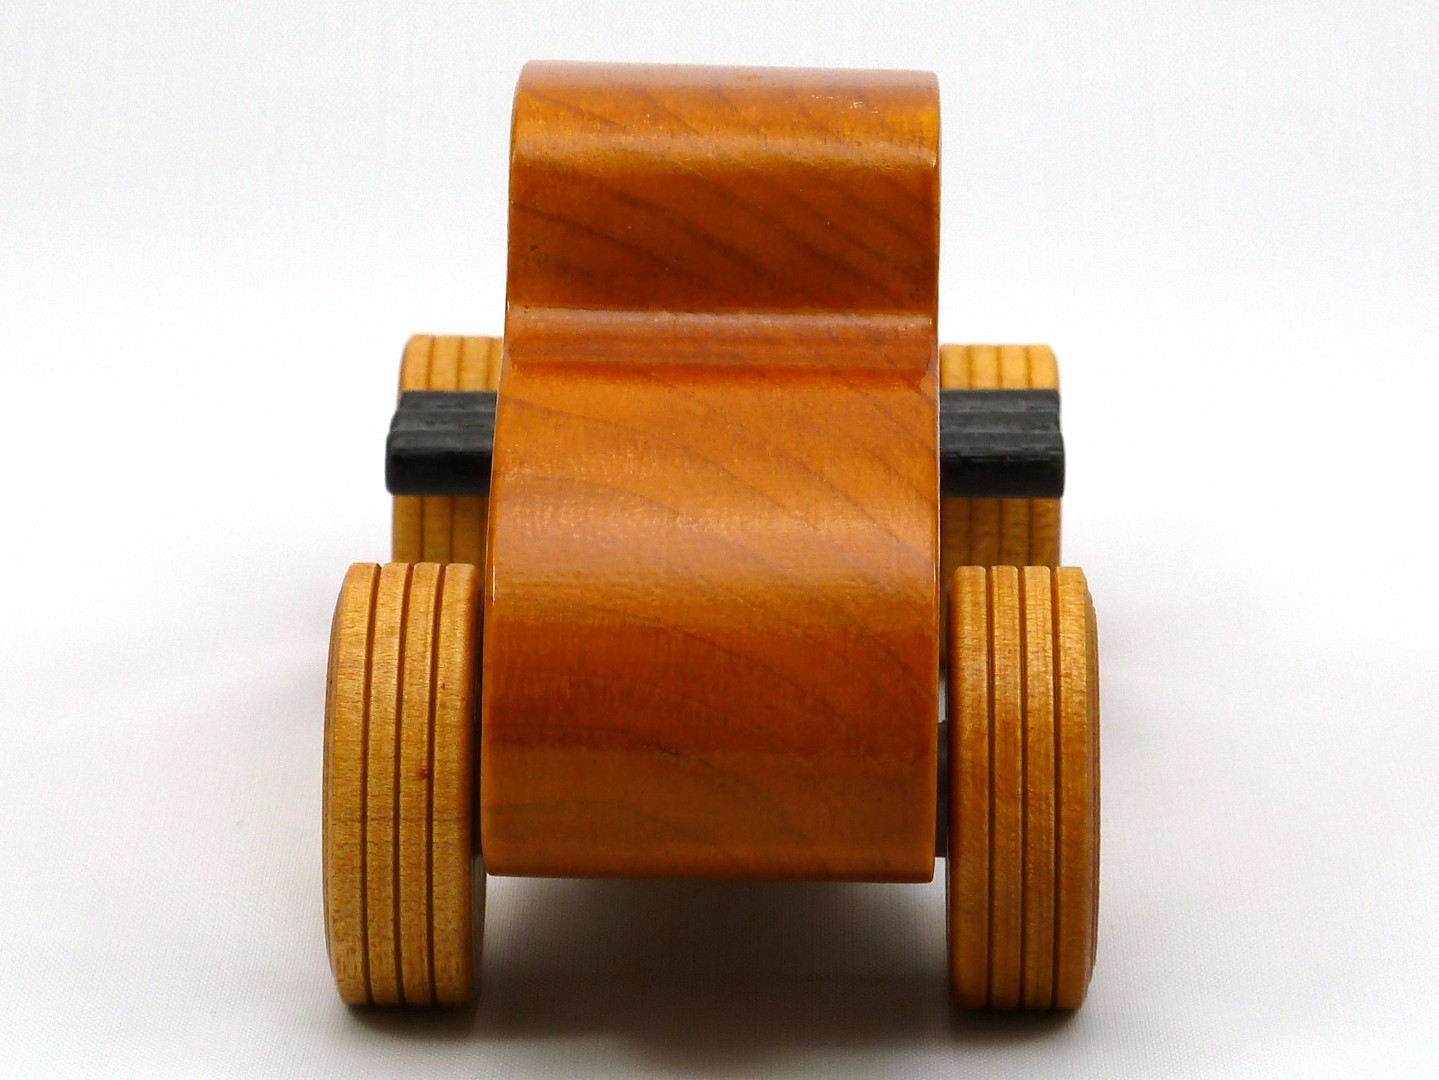 20170902-171554 Wooden Toy Car - Hot Rod Freaky Ford - 32 Deuce Coupe - Pine - Amber Shellac - Red.jpg